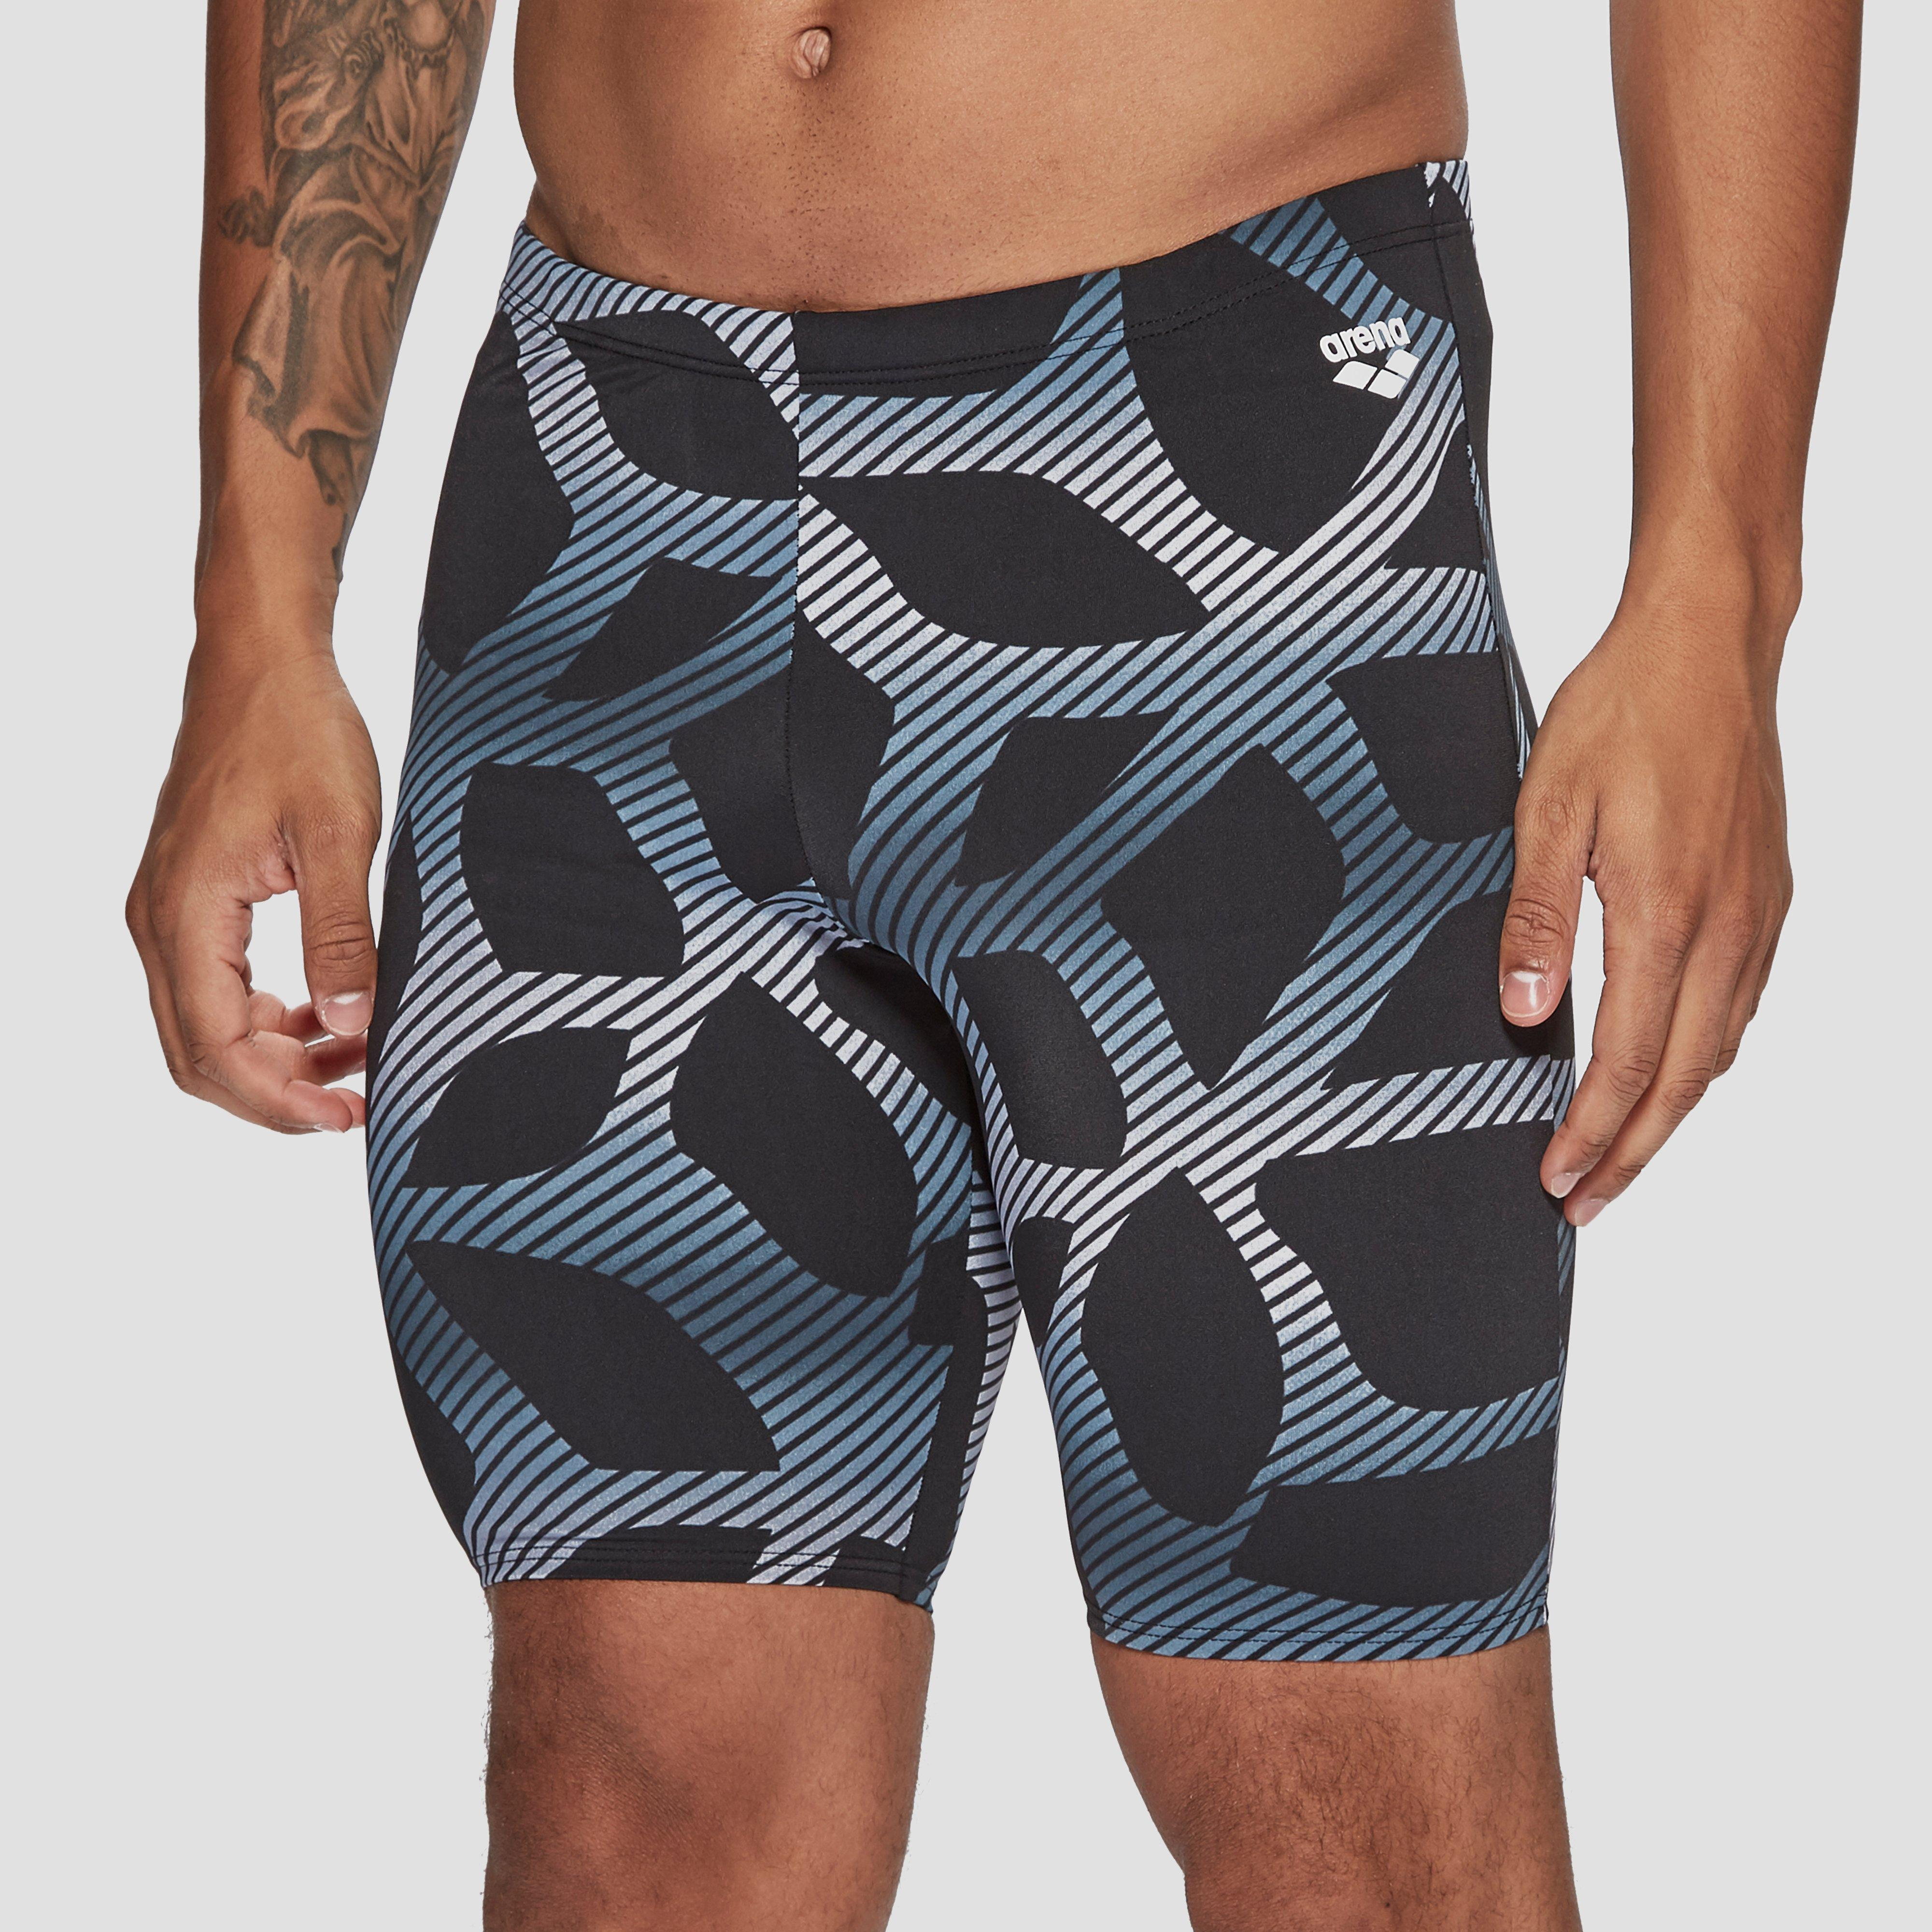 9a5af2be1d9 Details about Arena Spider Men's Swimming Jammers